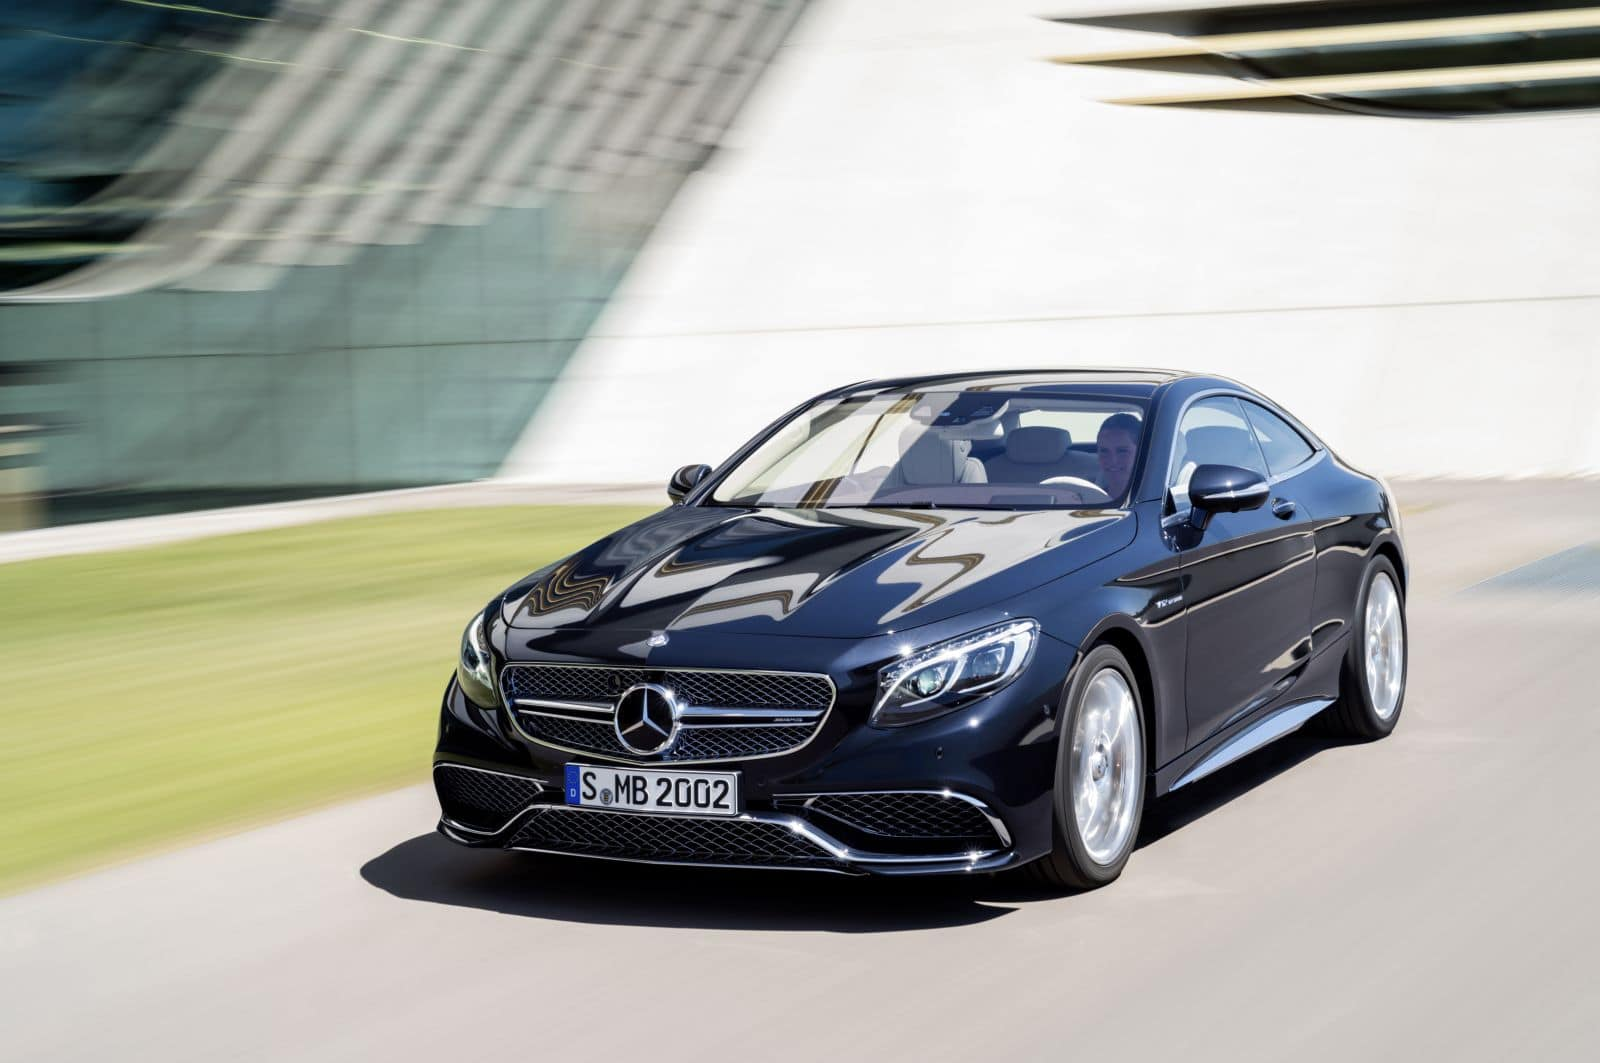 Nouvelle Mercedes Classe S Coupé 65 AMG : V12 power